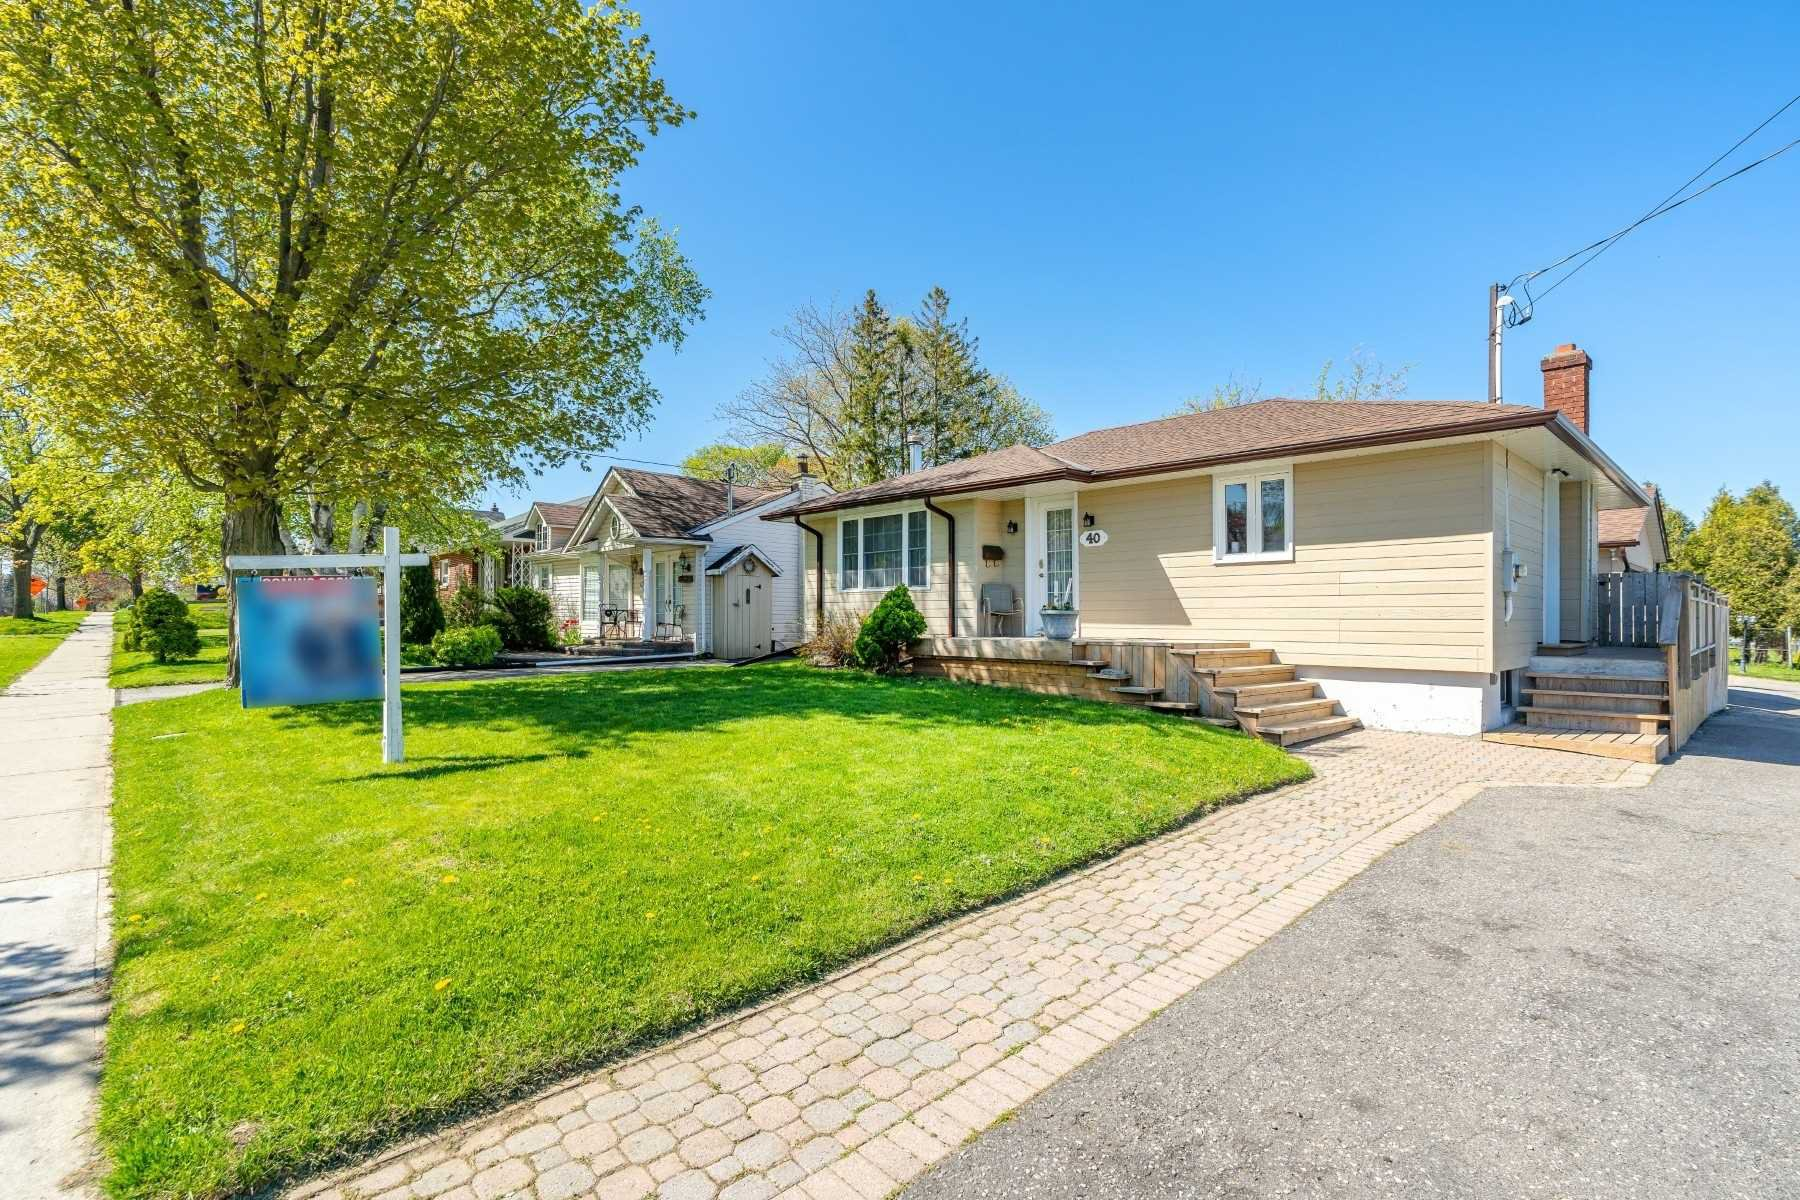 Photo 14: Photos: 40 Eastlawn Street in Oshawa: Donevan House (Bungalow) for sale : MLS®# E4769026